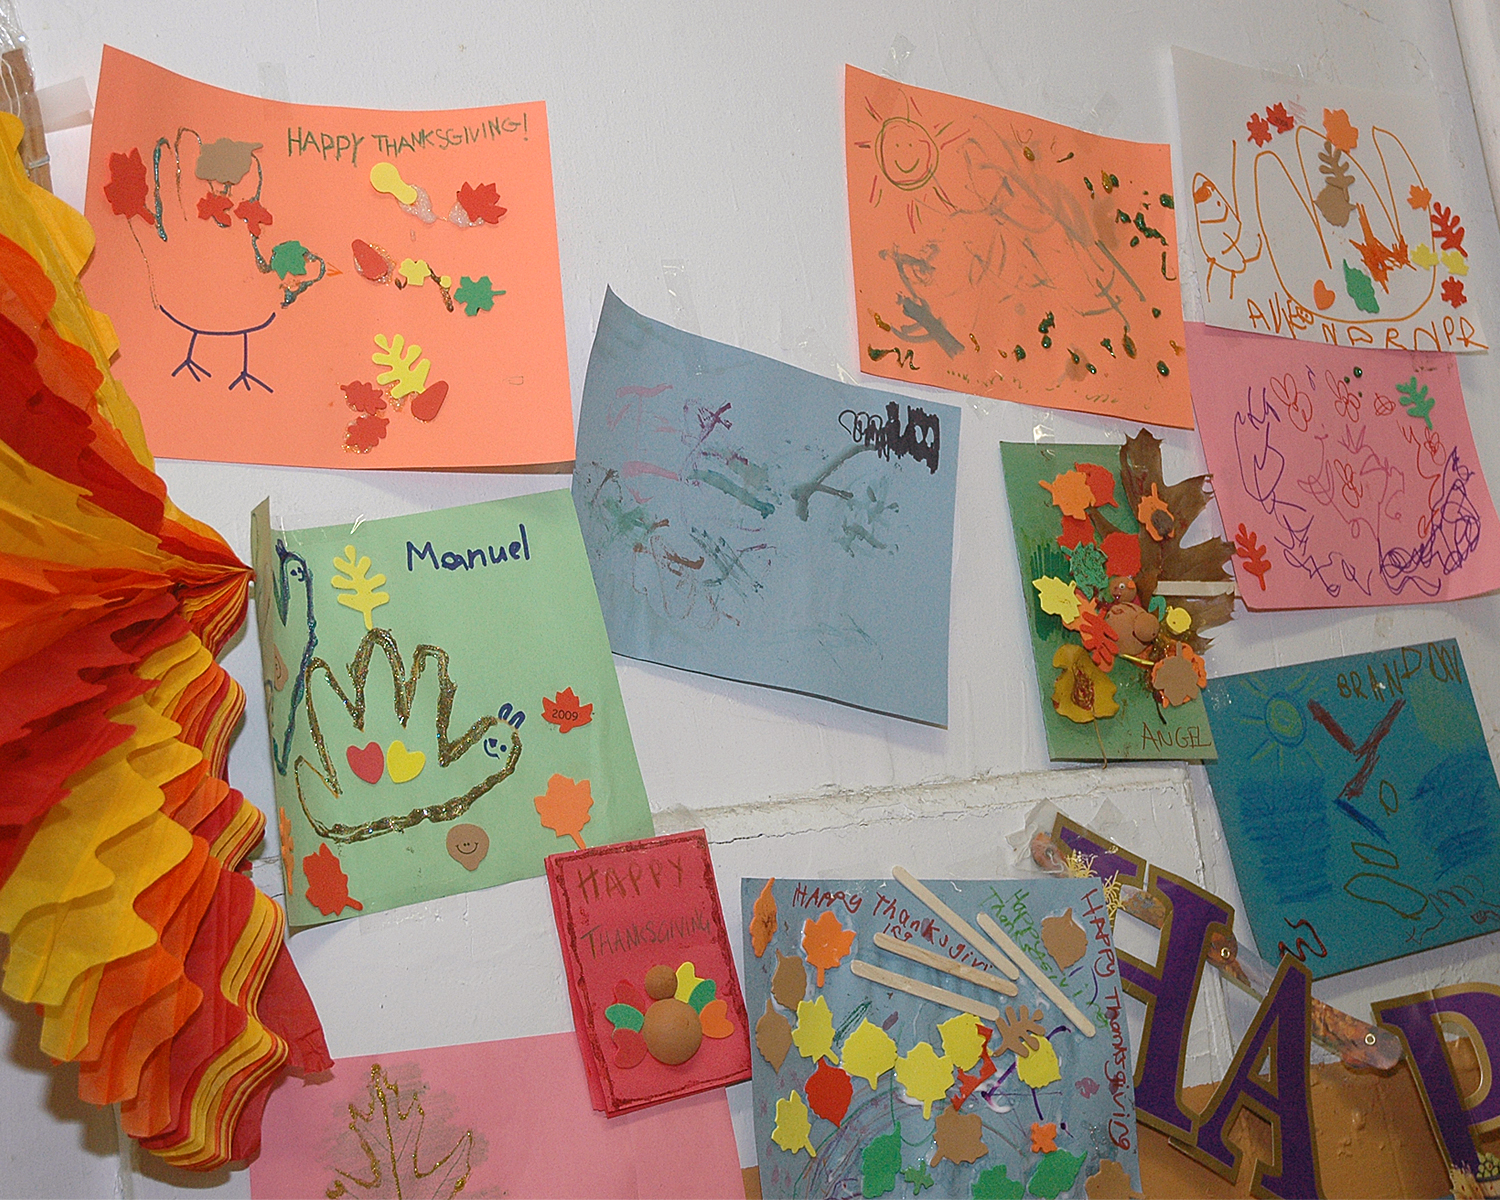 Samples of the artwork that was created during the event